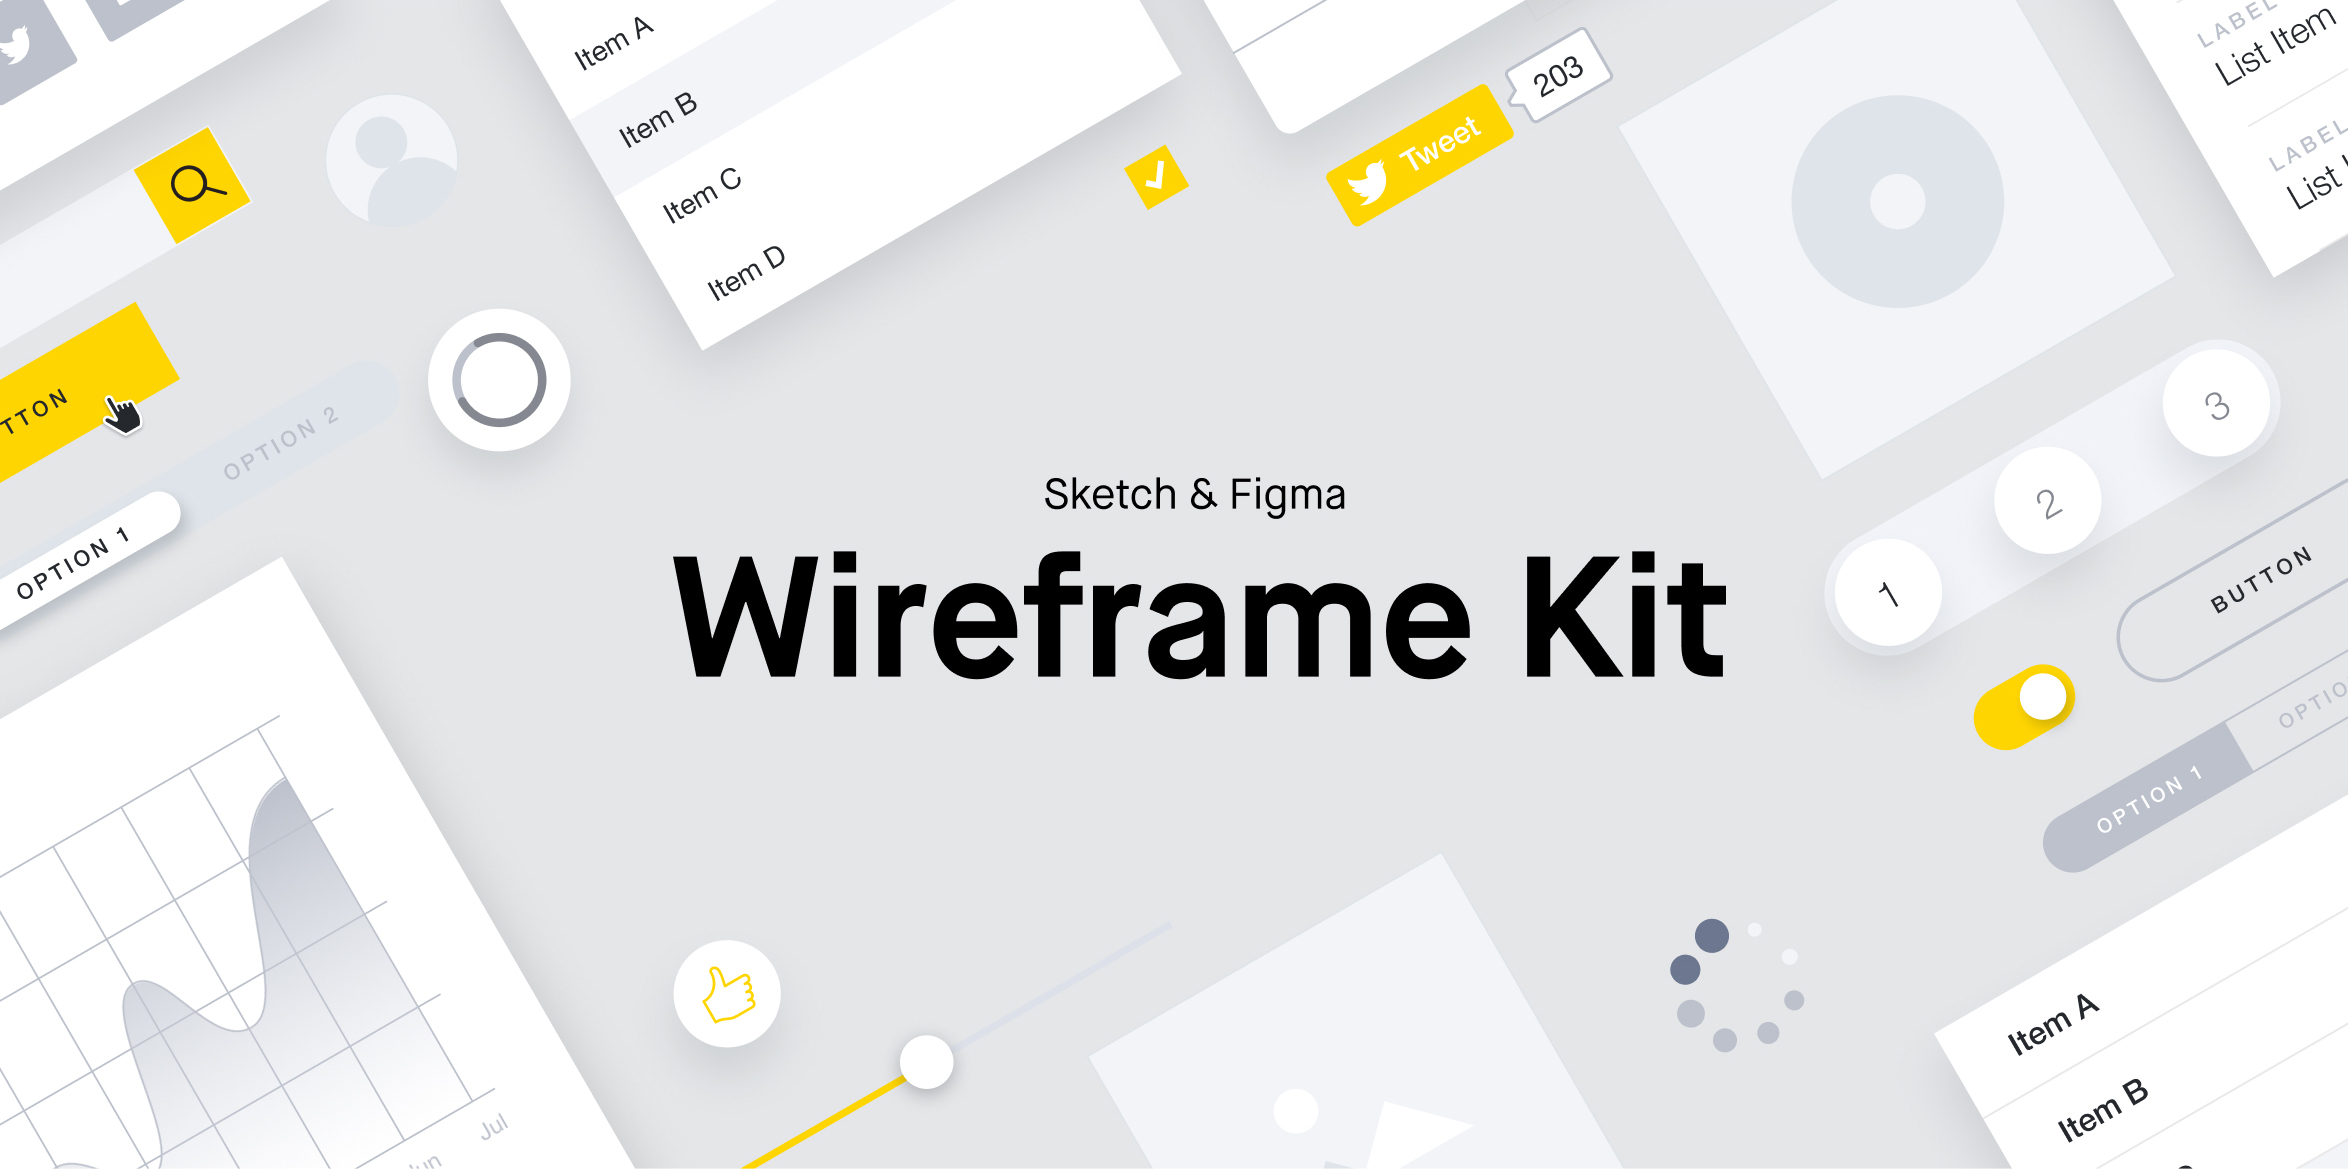 wireframe_kit2x2